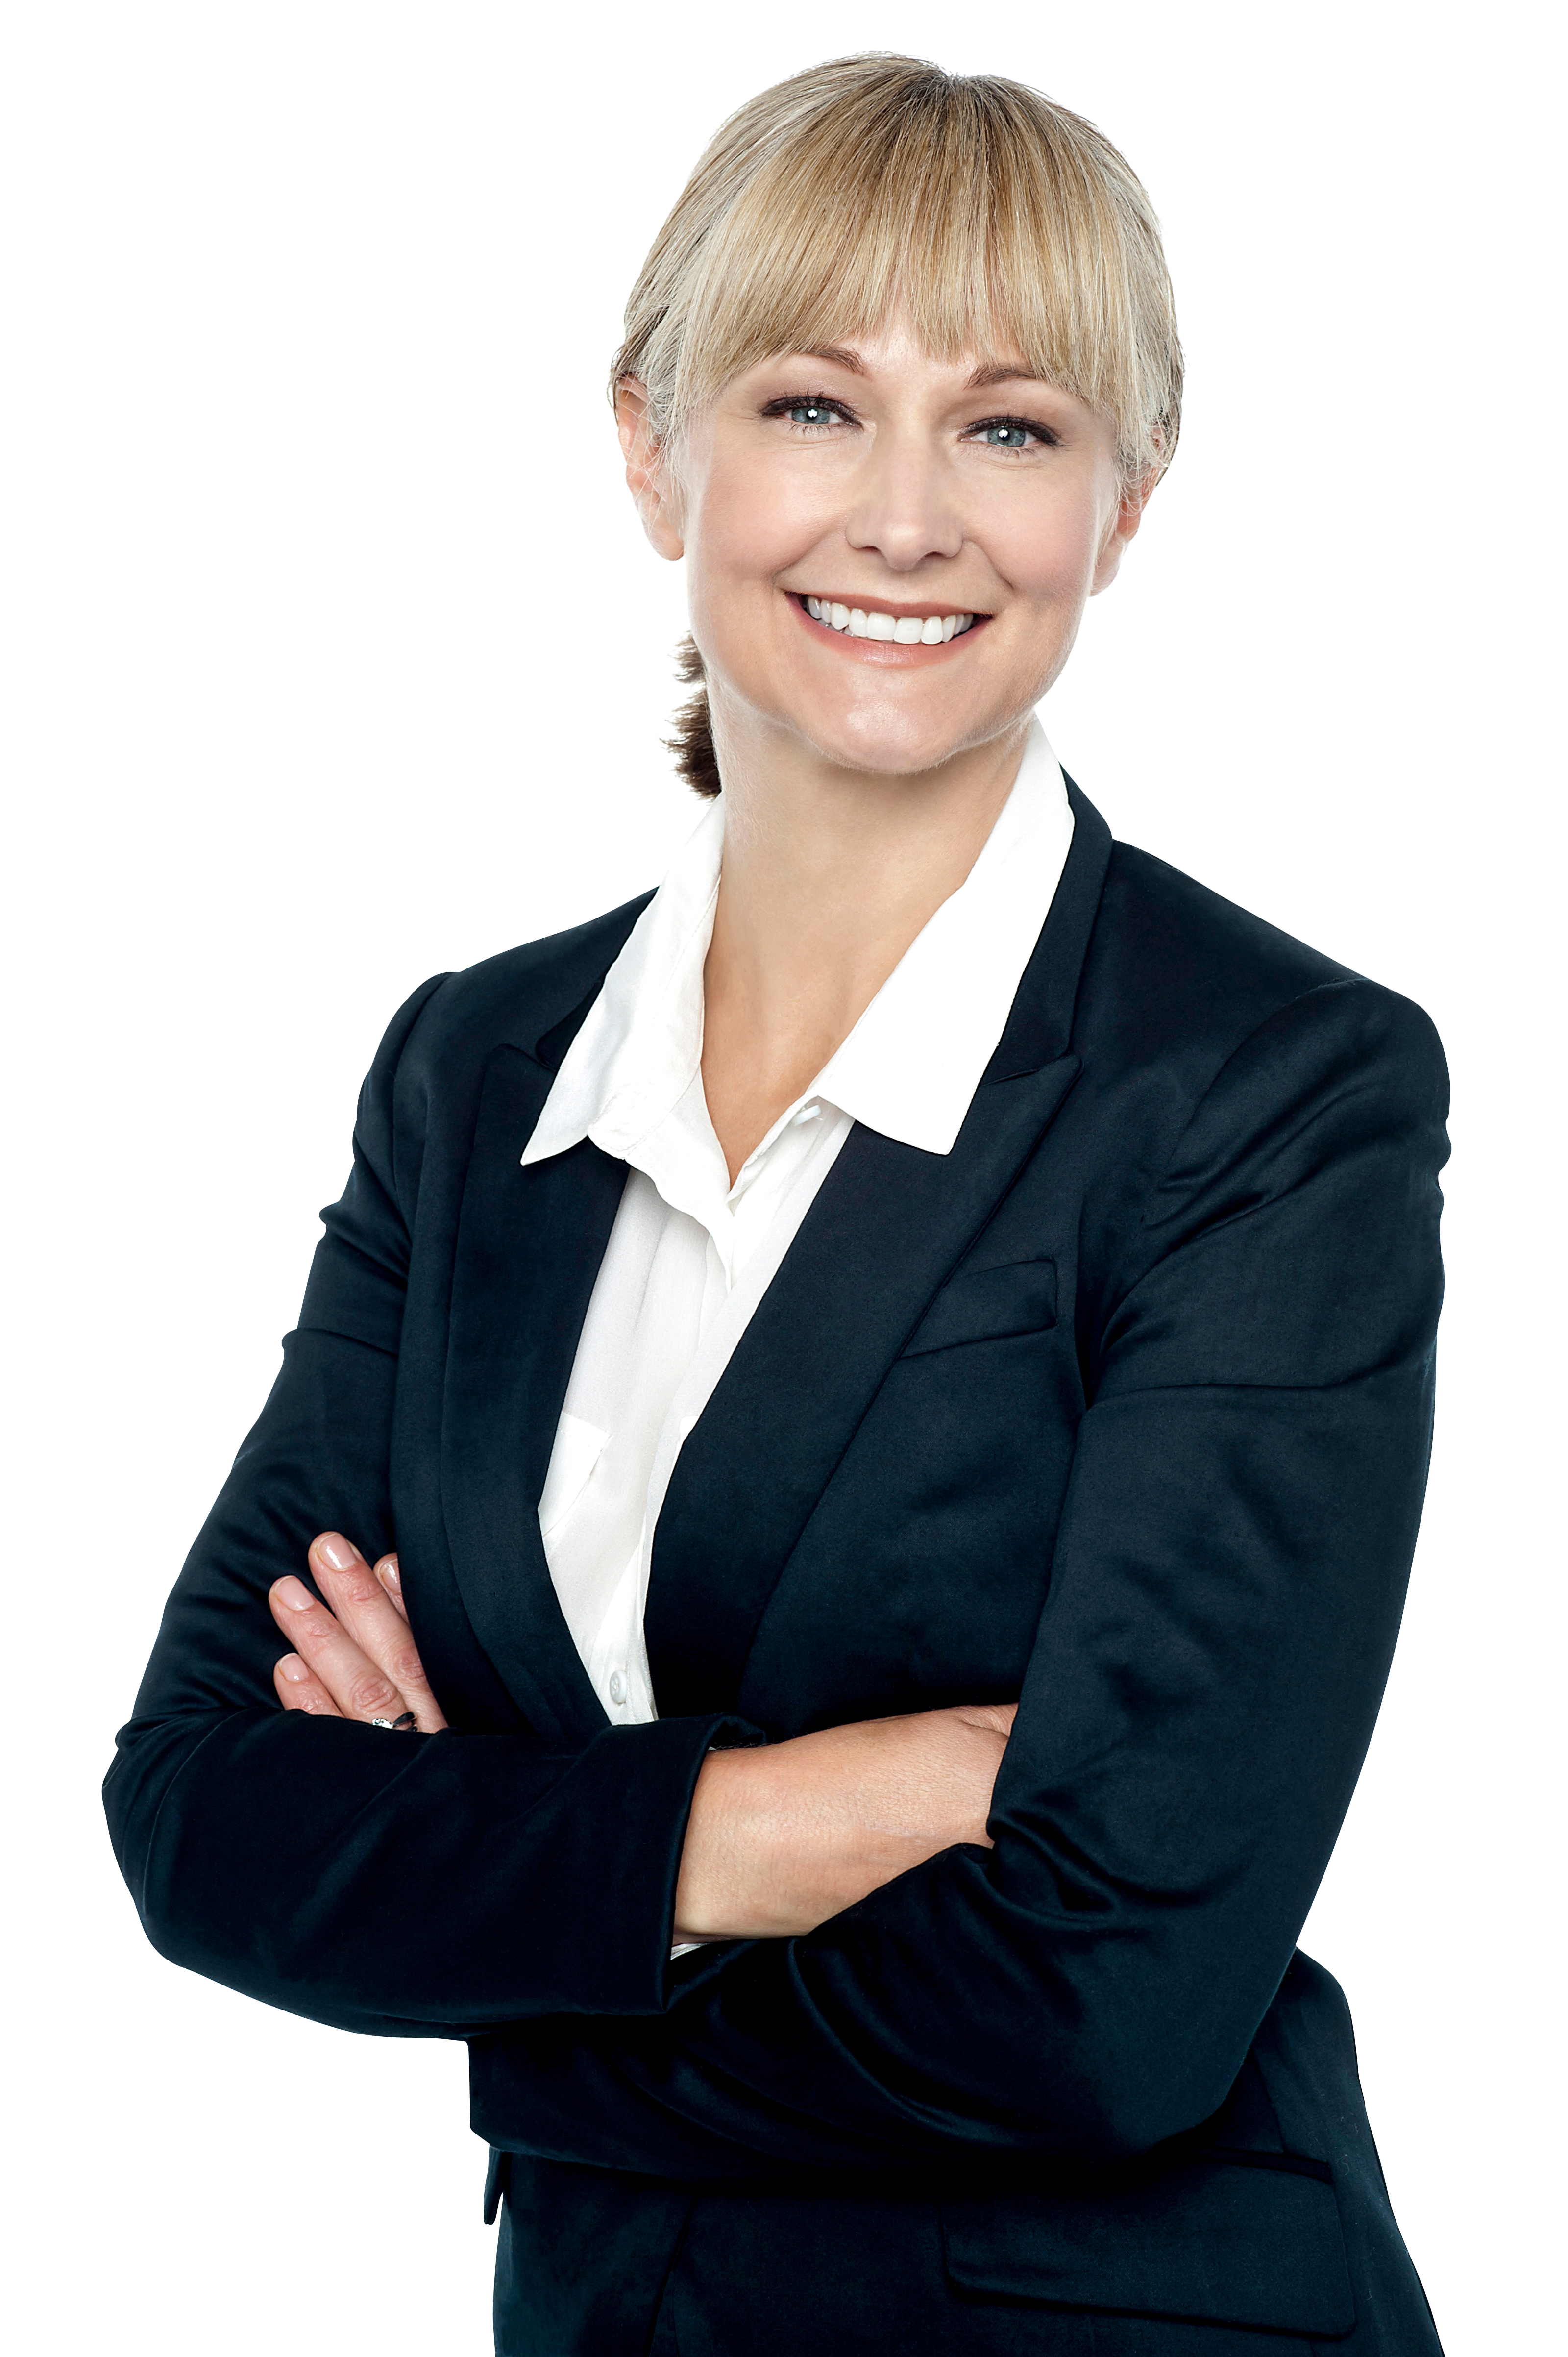 Free png images for commercial use. Hd transparent women in